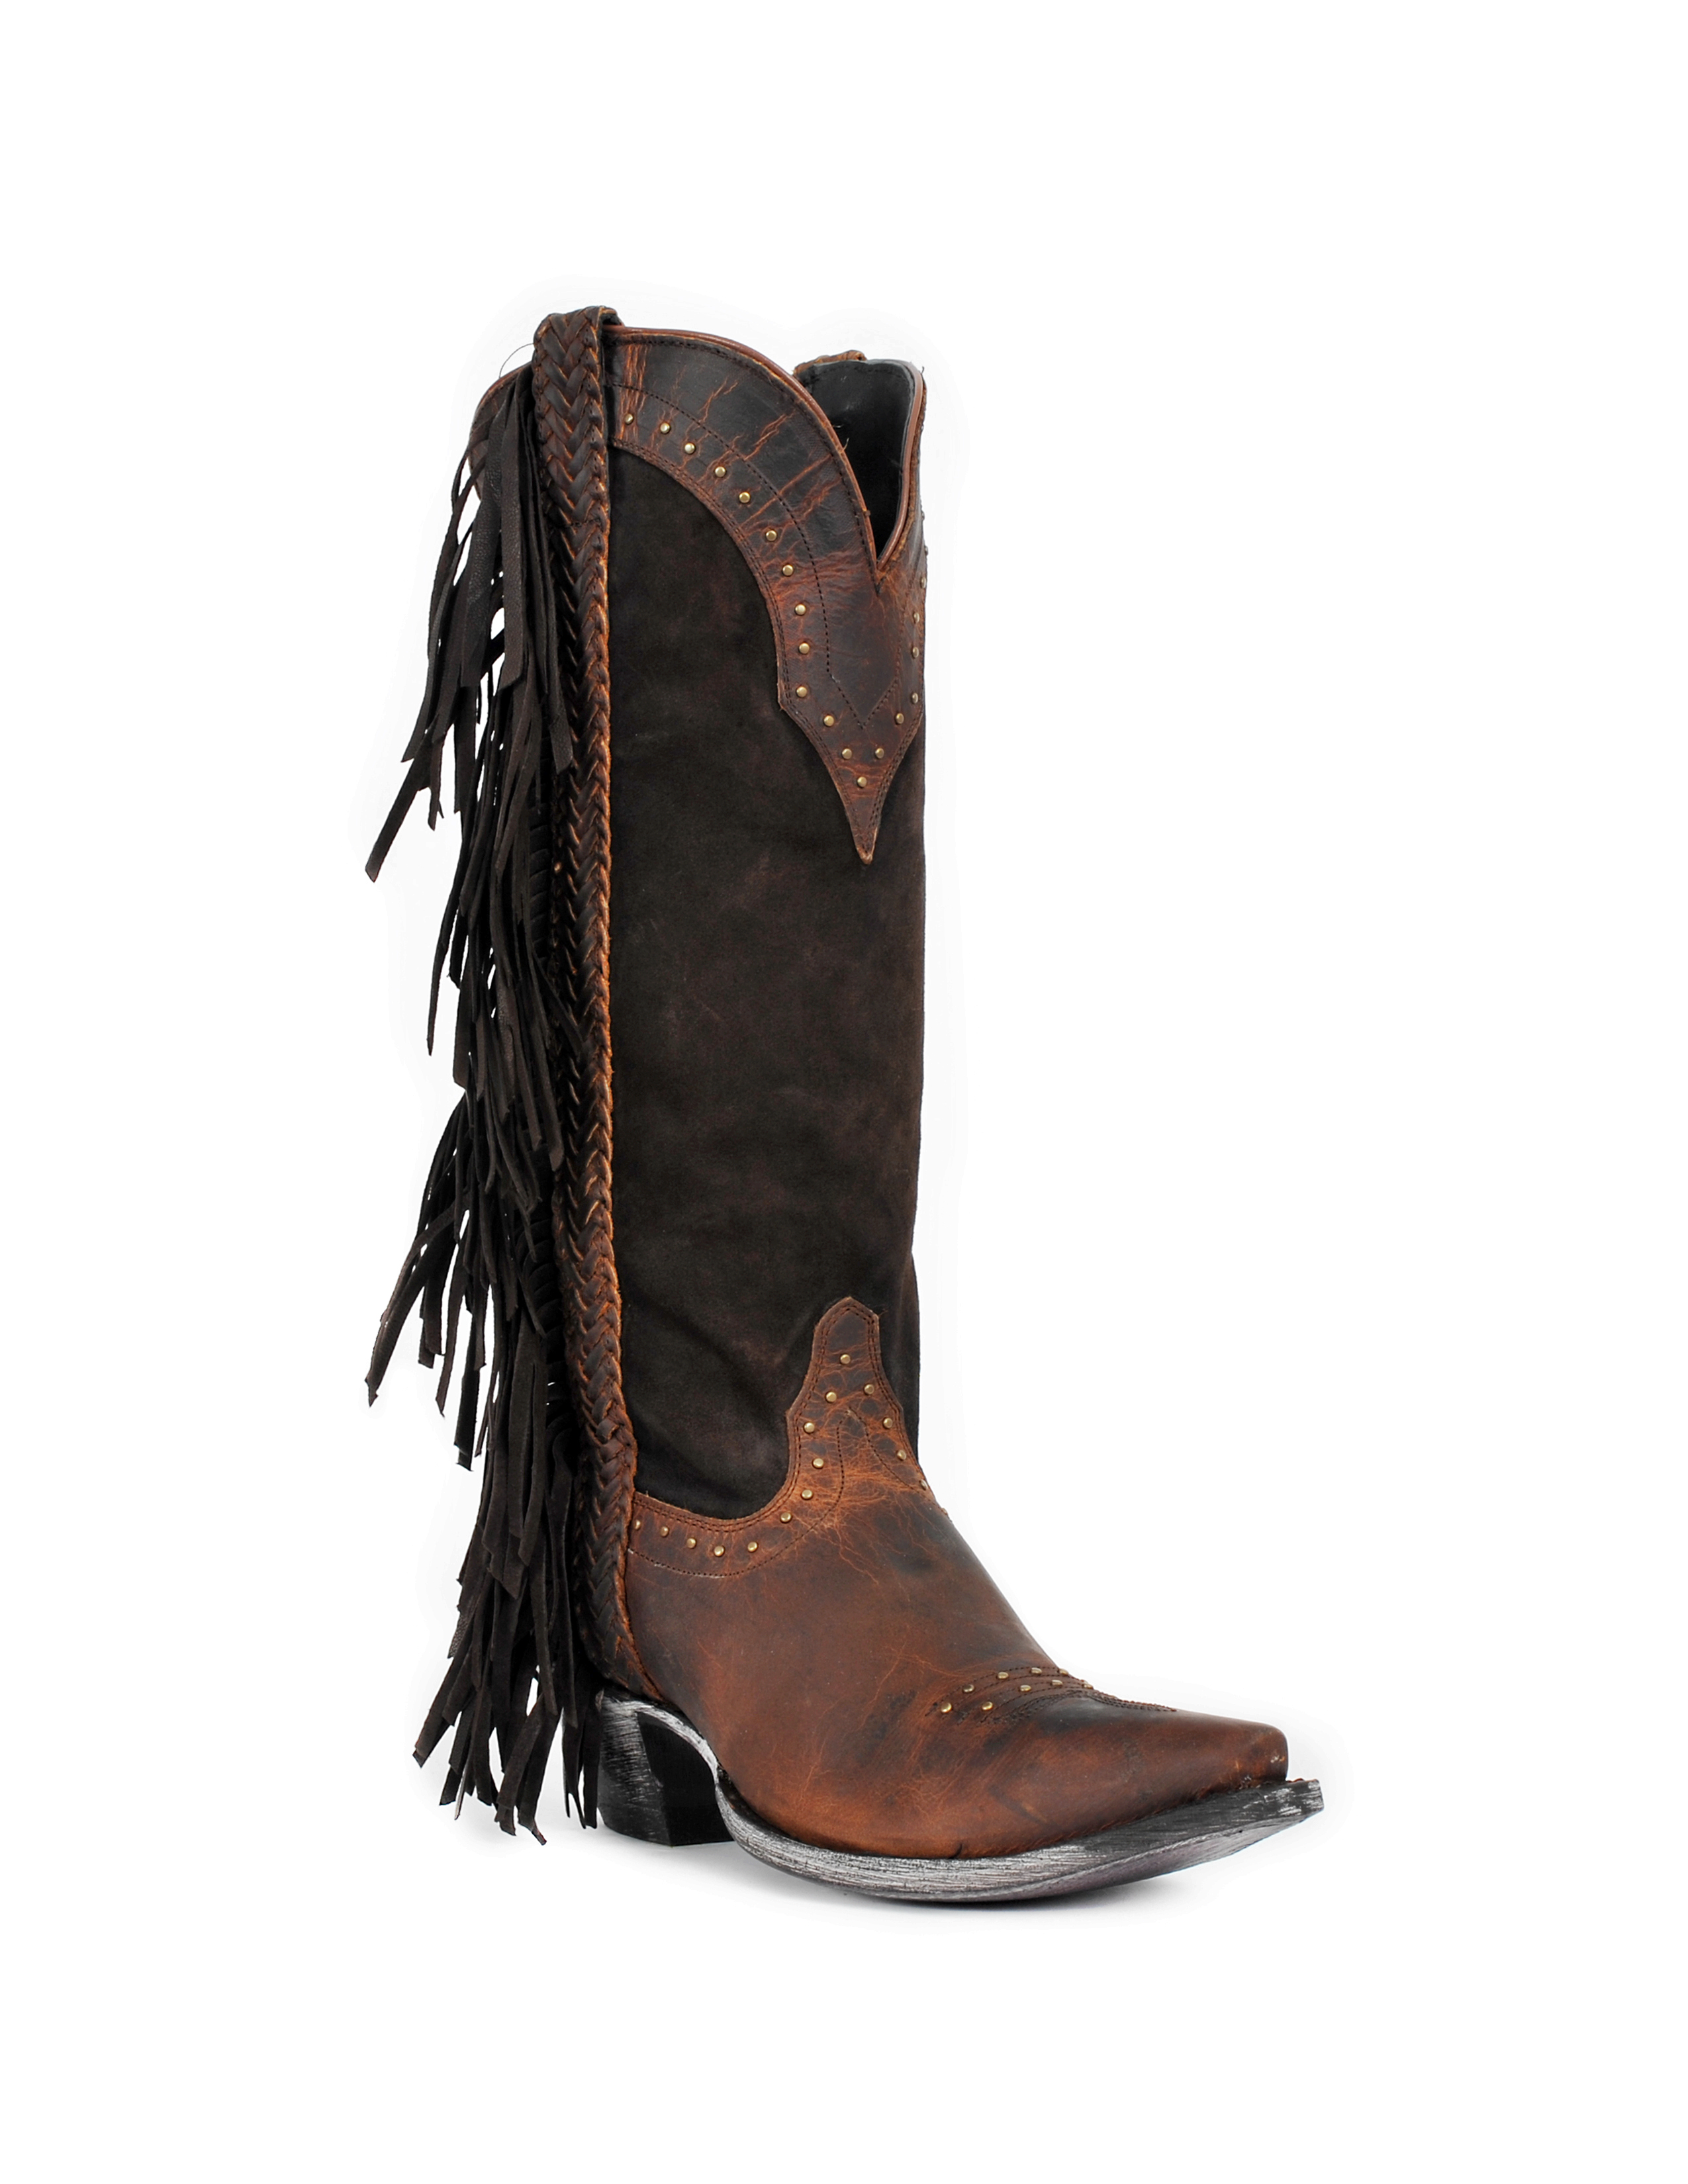 Johnny Ringo Women's Tall Fringe Western Cowgirl Boots JR922-63T